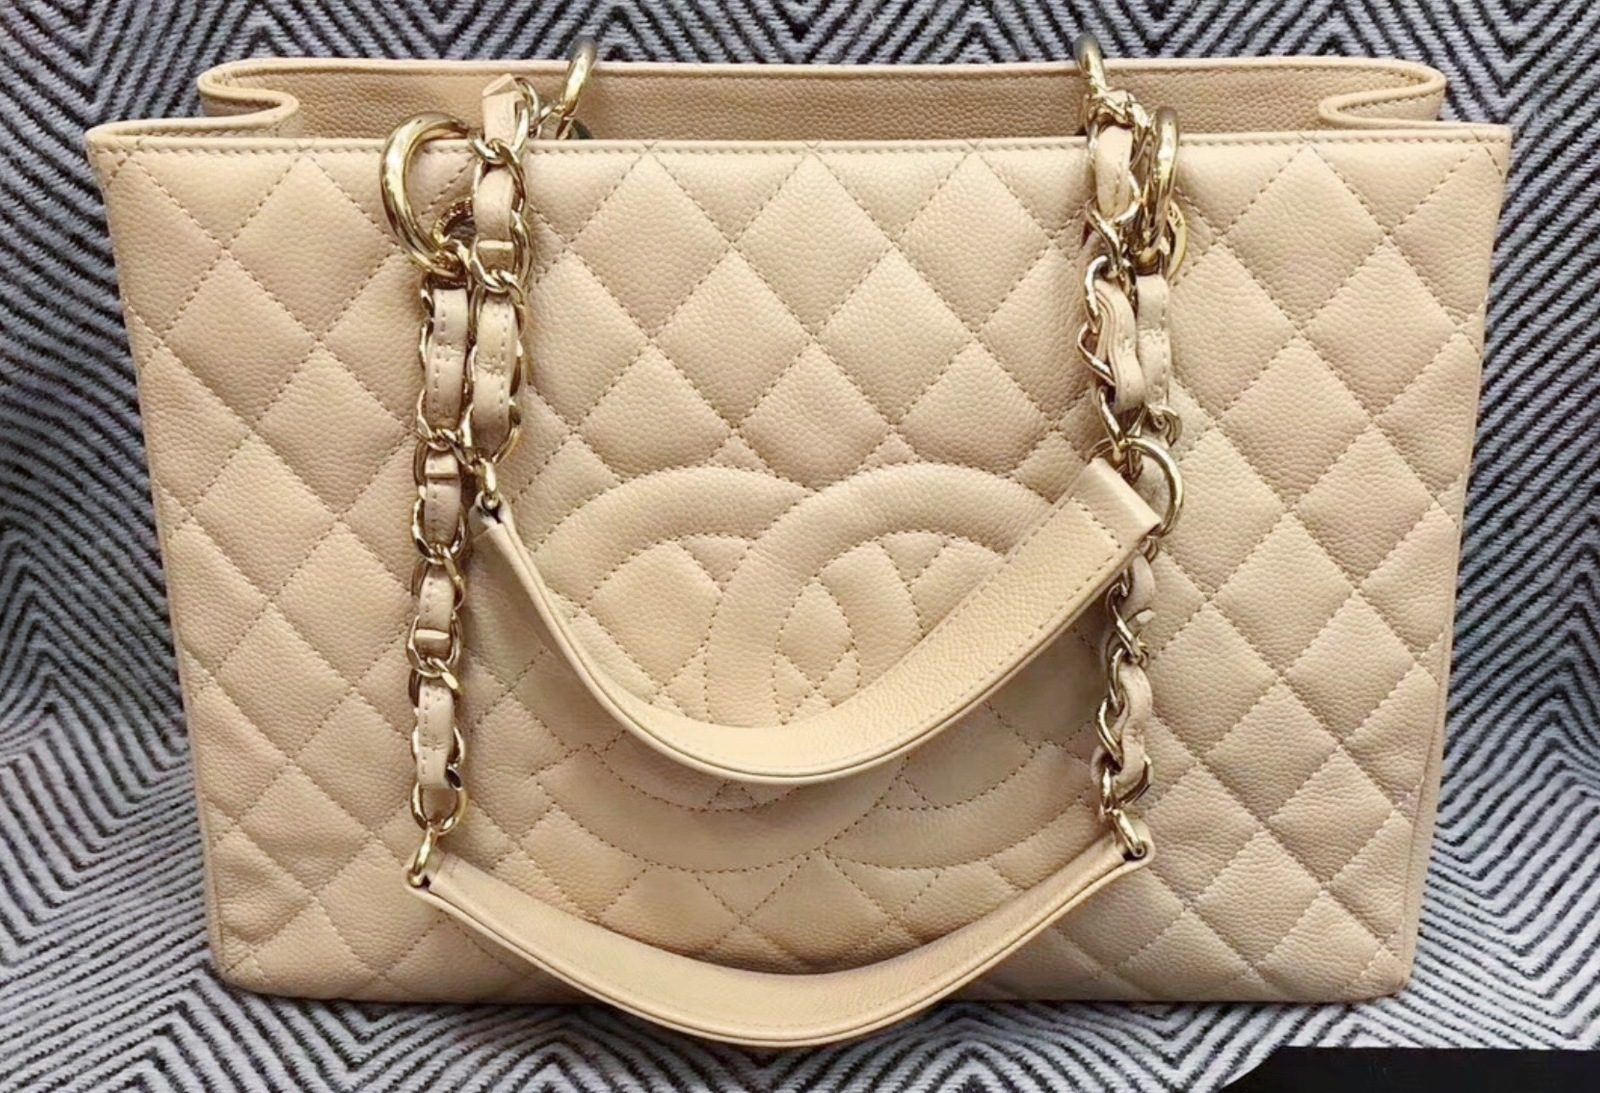 9b9dd9d572d3 AUTHENTIC CHANEL QUILTED CAVIAR GST GRAND SHOPPING TOTE BAG BEIGE ...